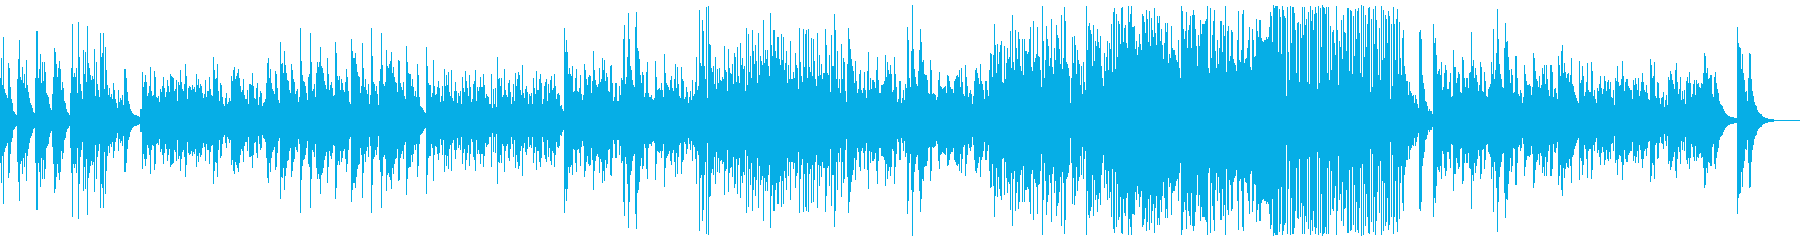 Guitar instrument with the image of a snow fairy's reproduced waveform